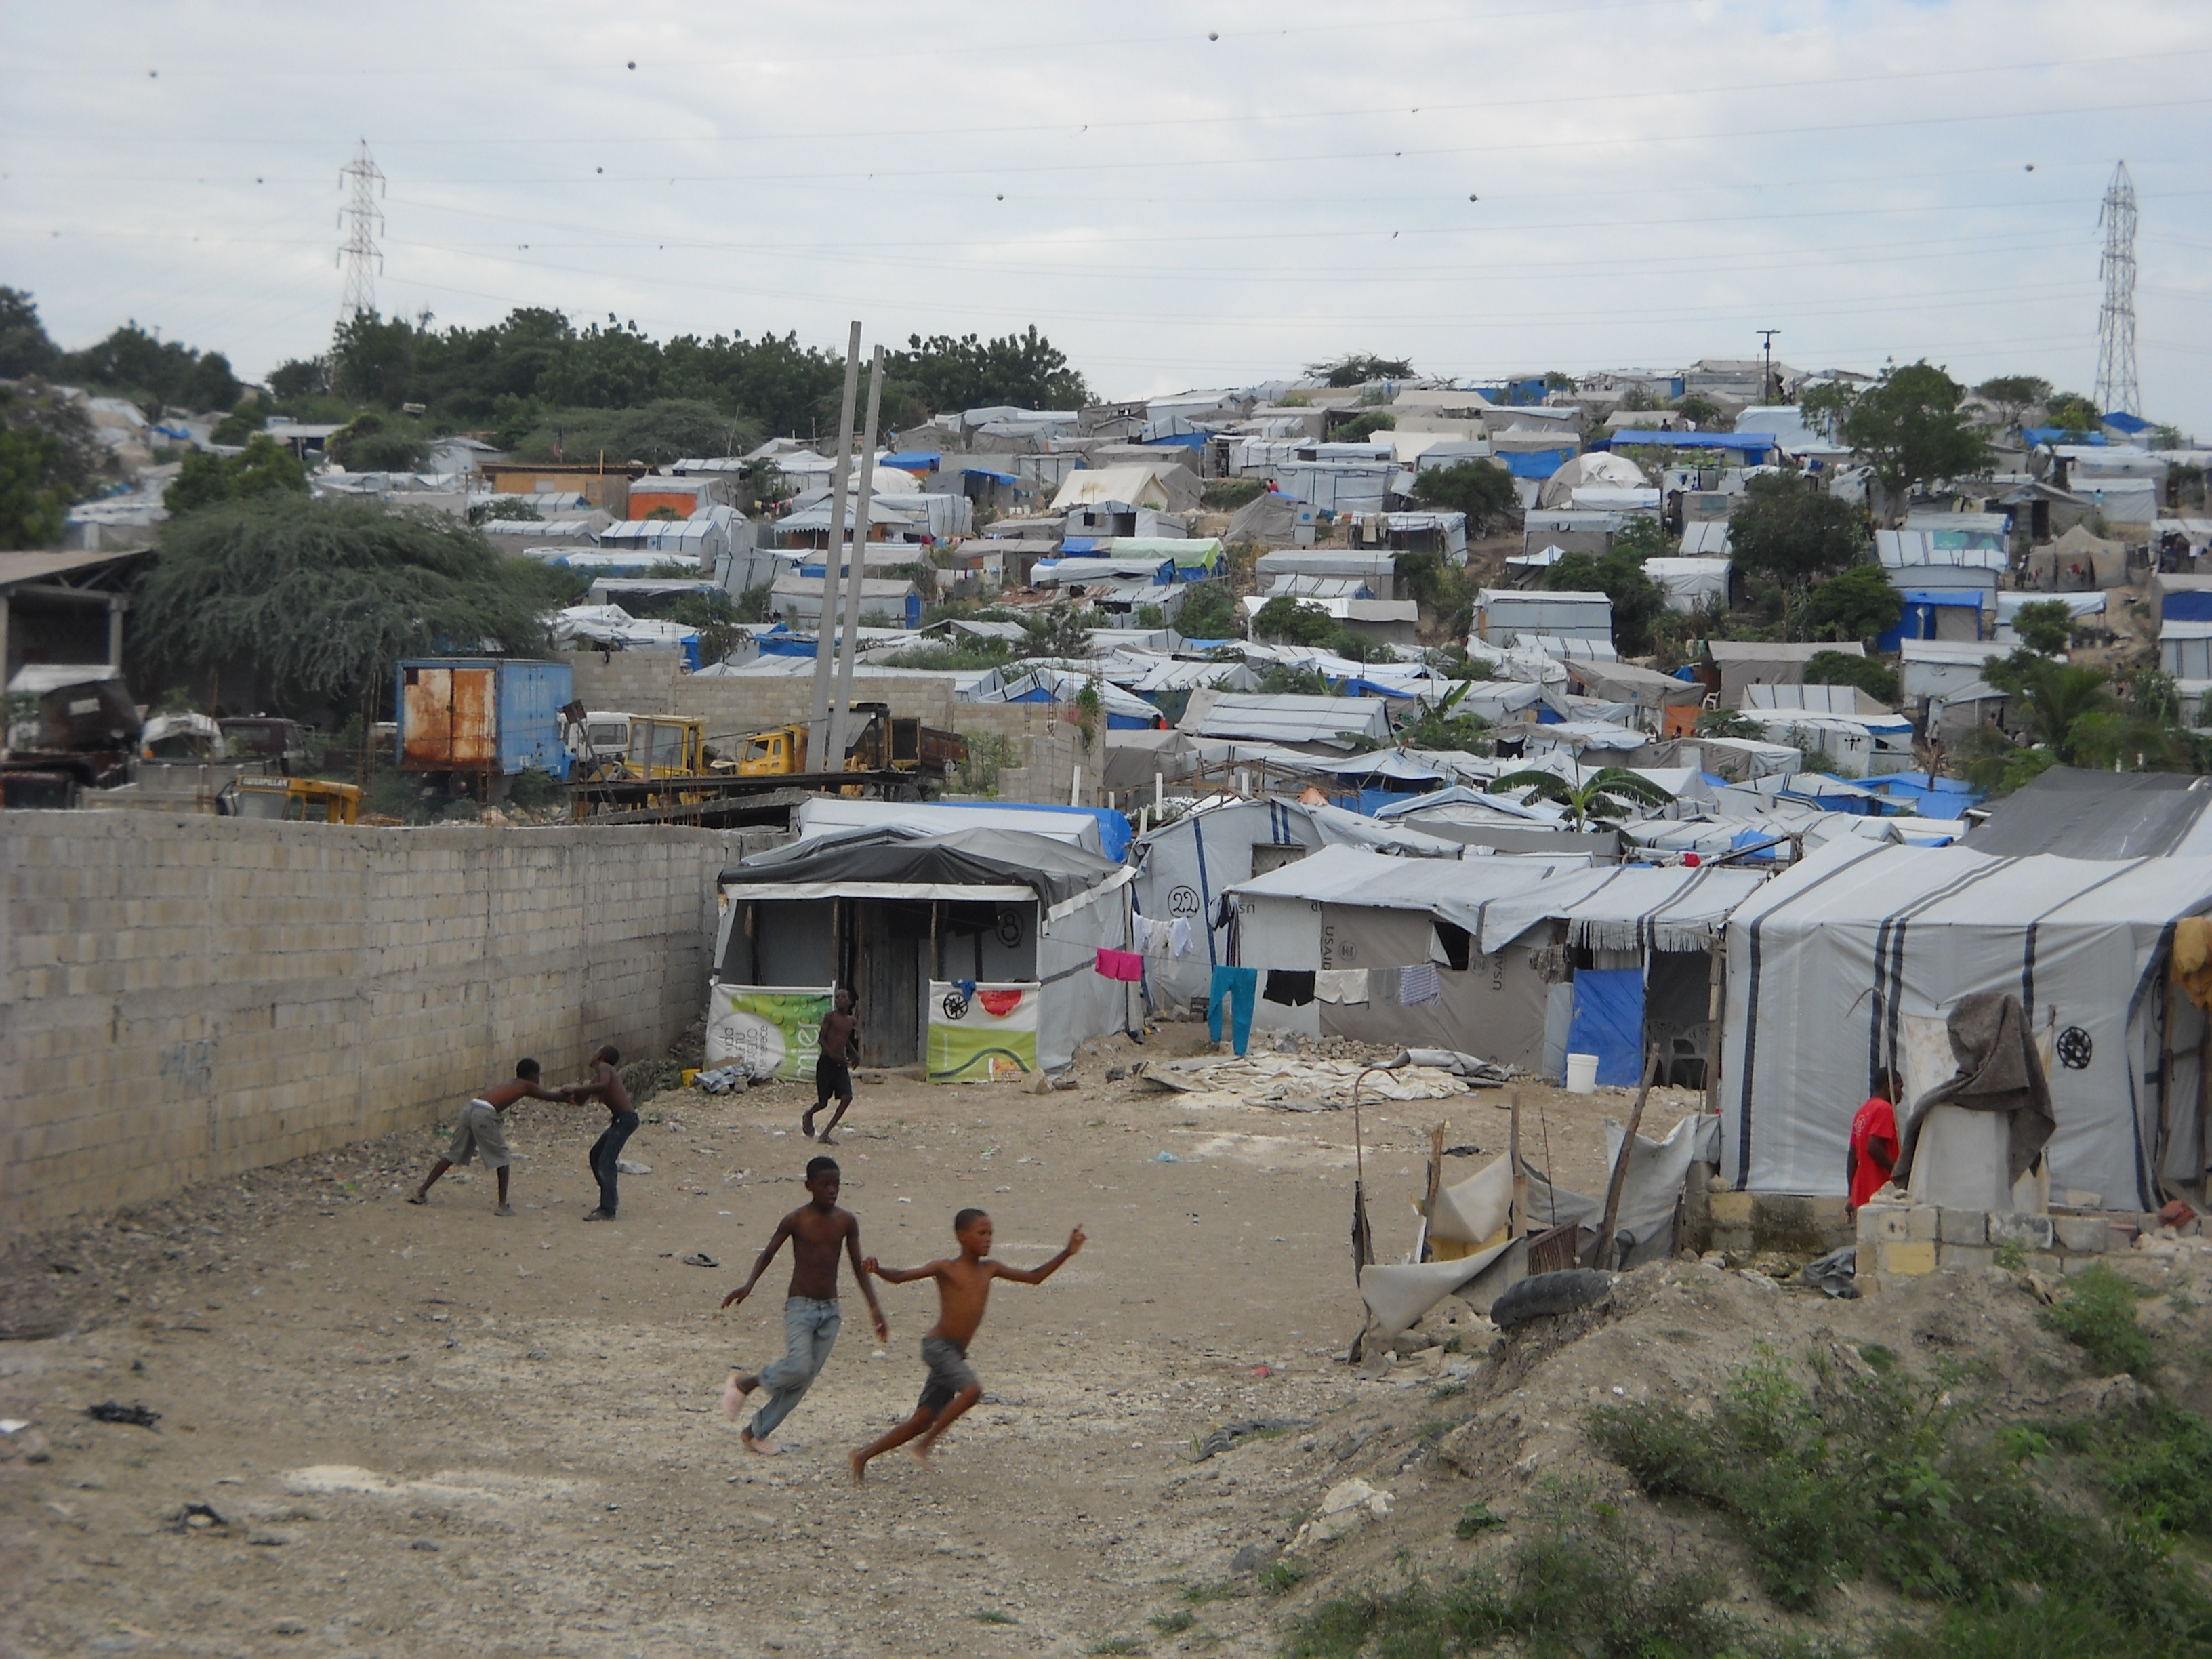 causes and effects haiti living conditions The causes and effects of migration on migrants and countries introduction what is migration migration is the movement of people to a new area or country, in order to find better living conditions.